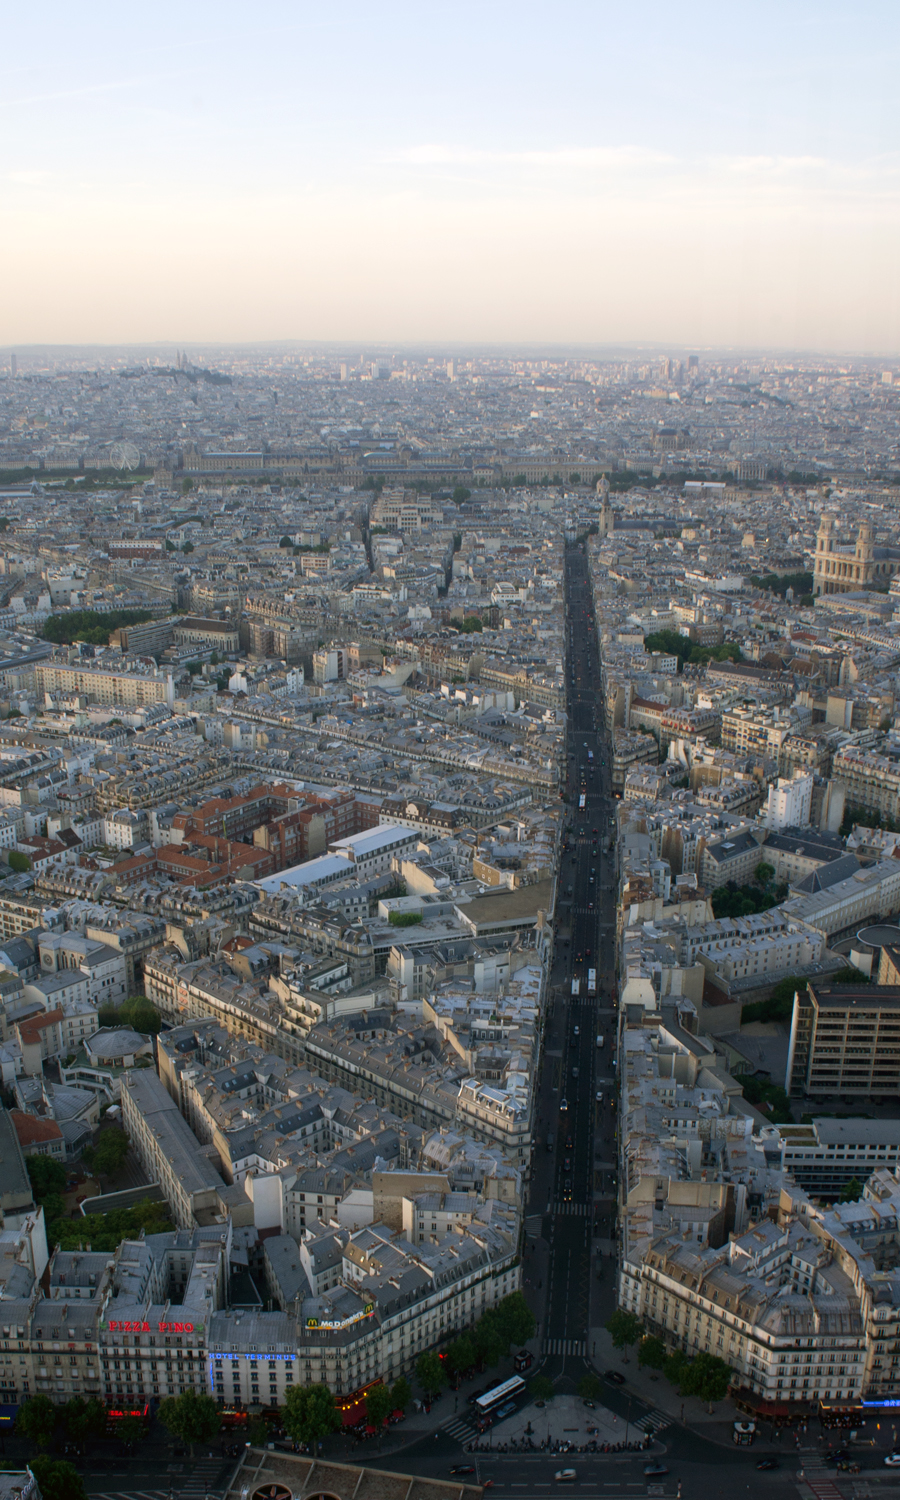 2014-montparnasse-56-tower-paris-france-05